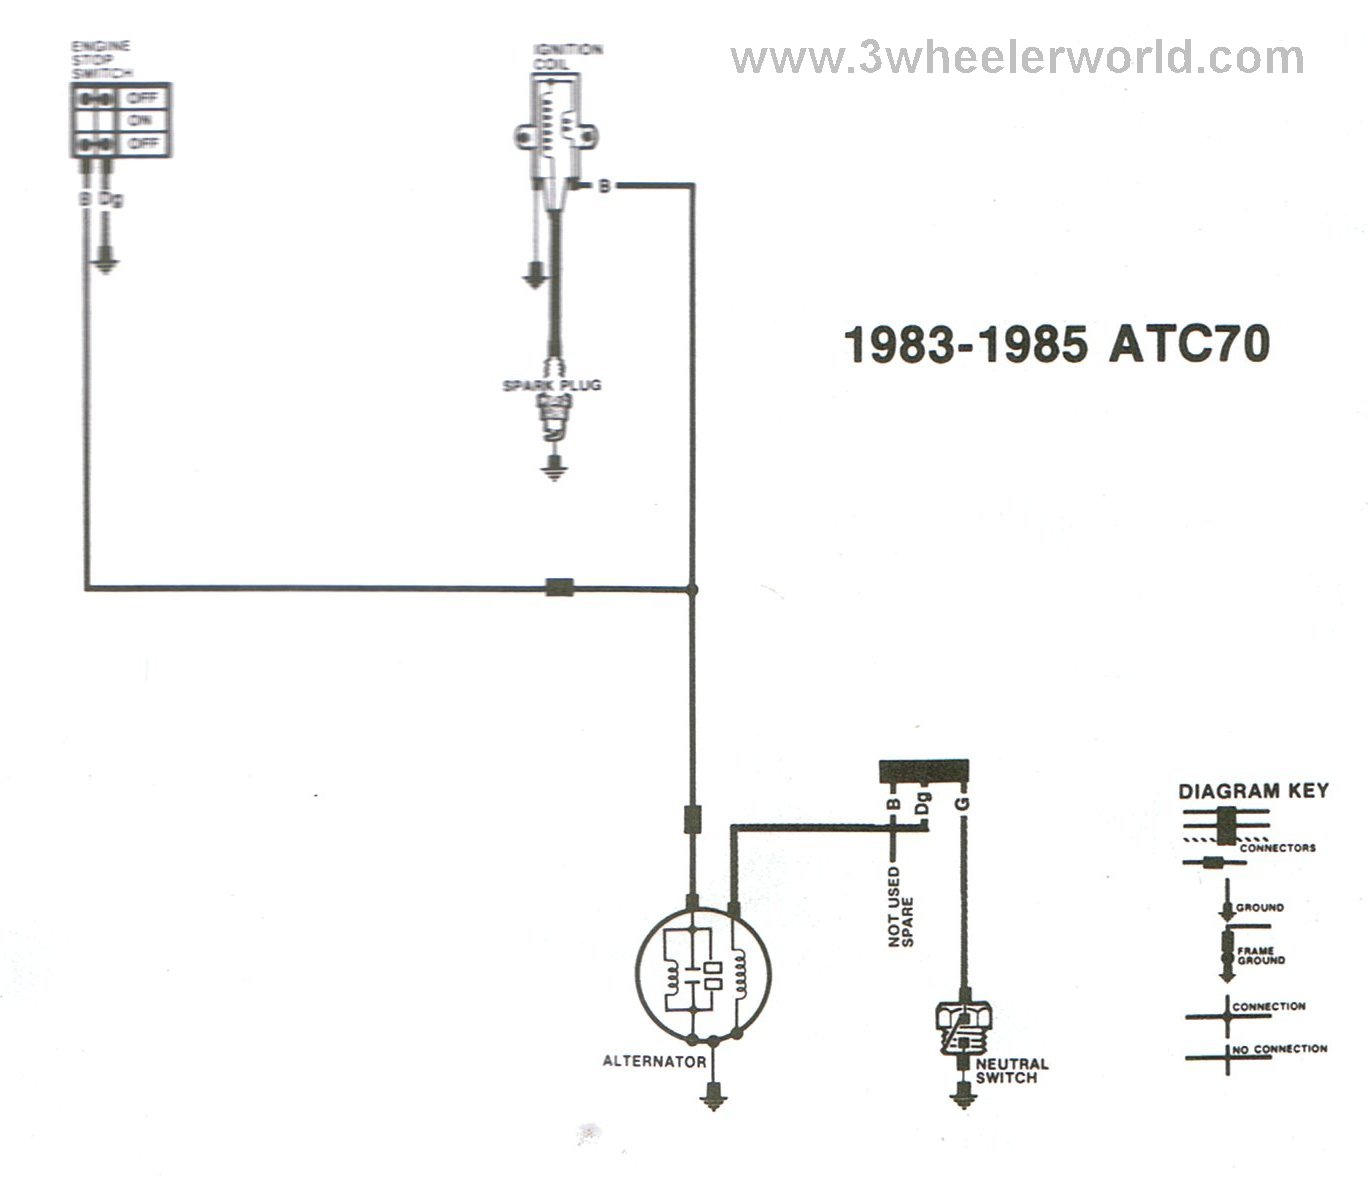 3 Wheeler World Tech Help Honda Wiring Diagrams 1974 Chevy 350 Diagram Atc70 1983 Thru 1985